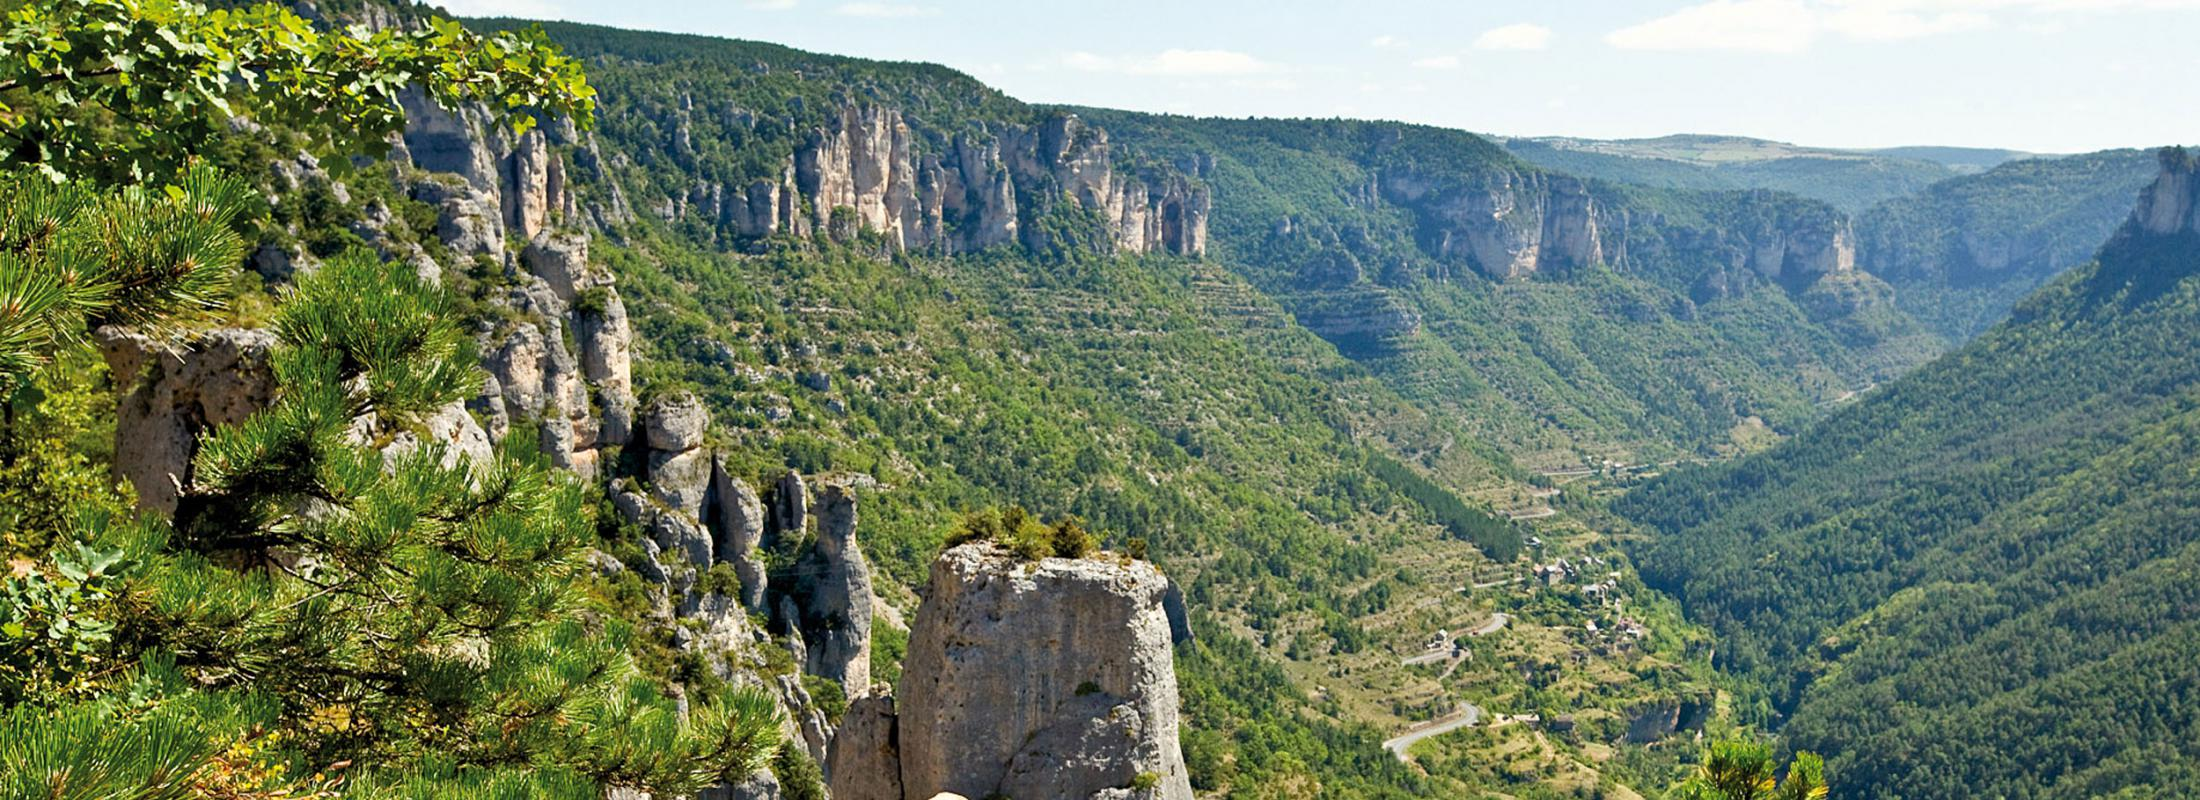 parc-national-des-cevennes